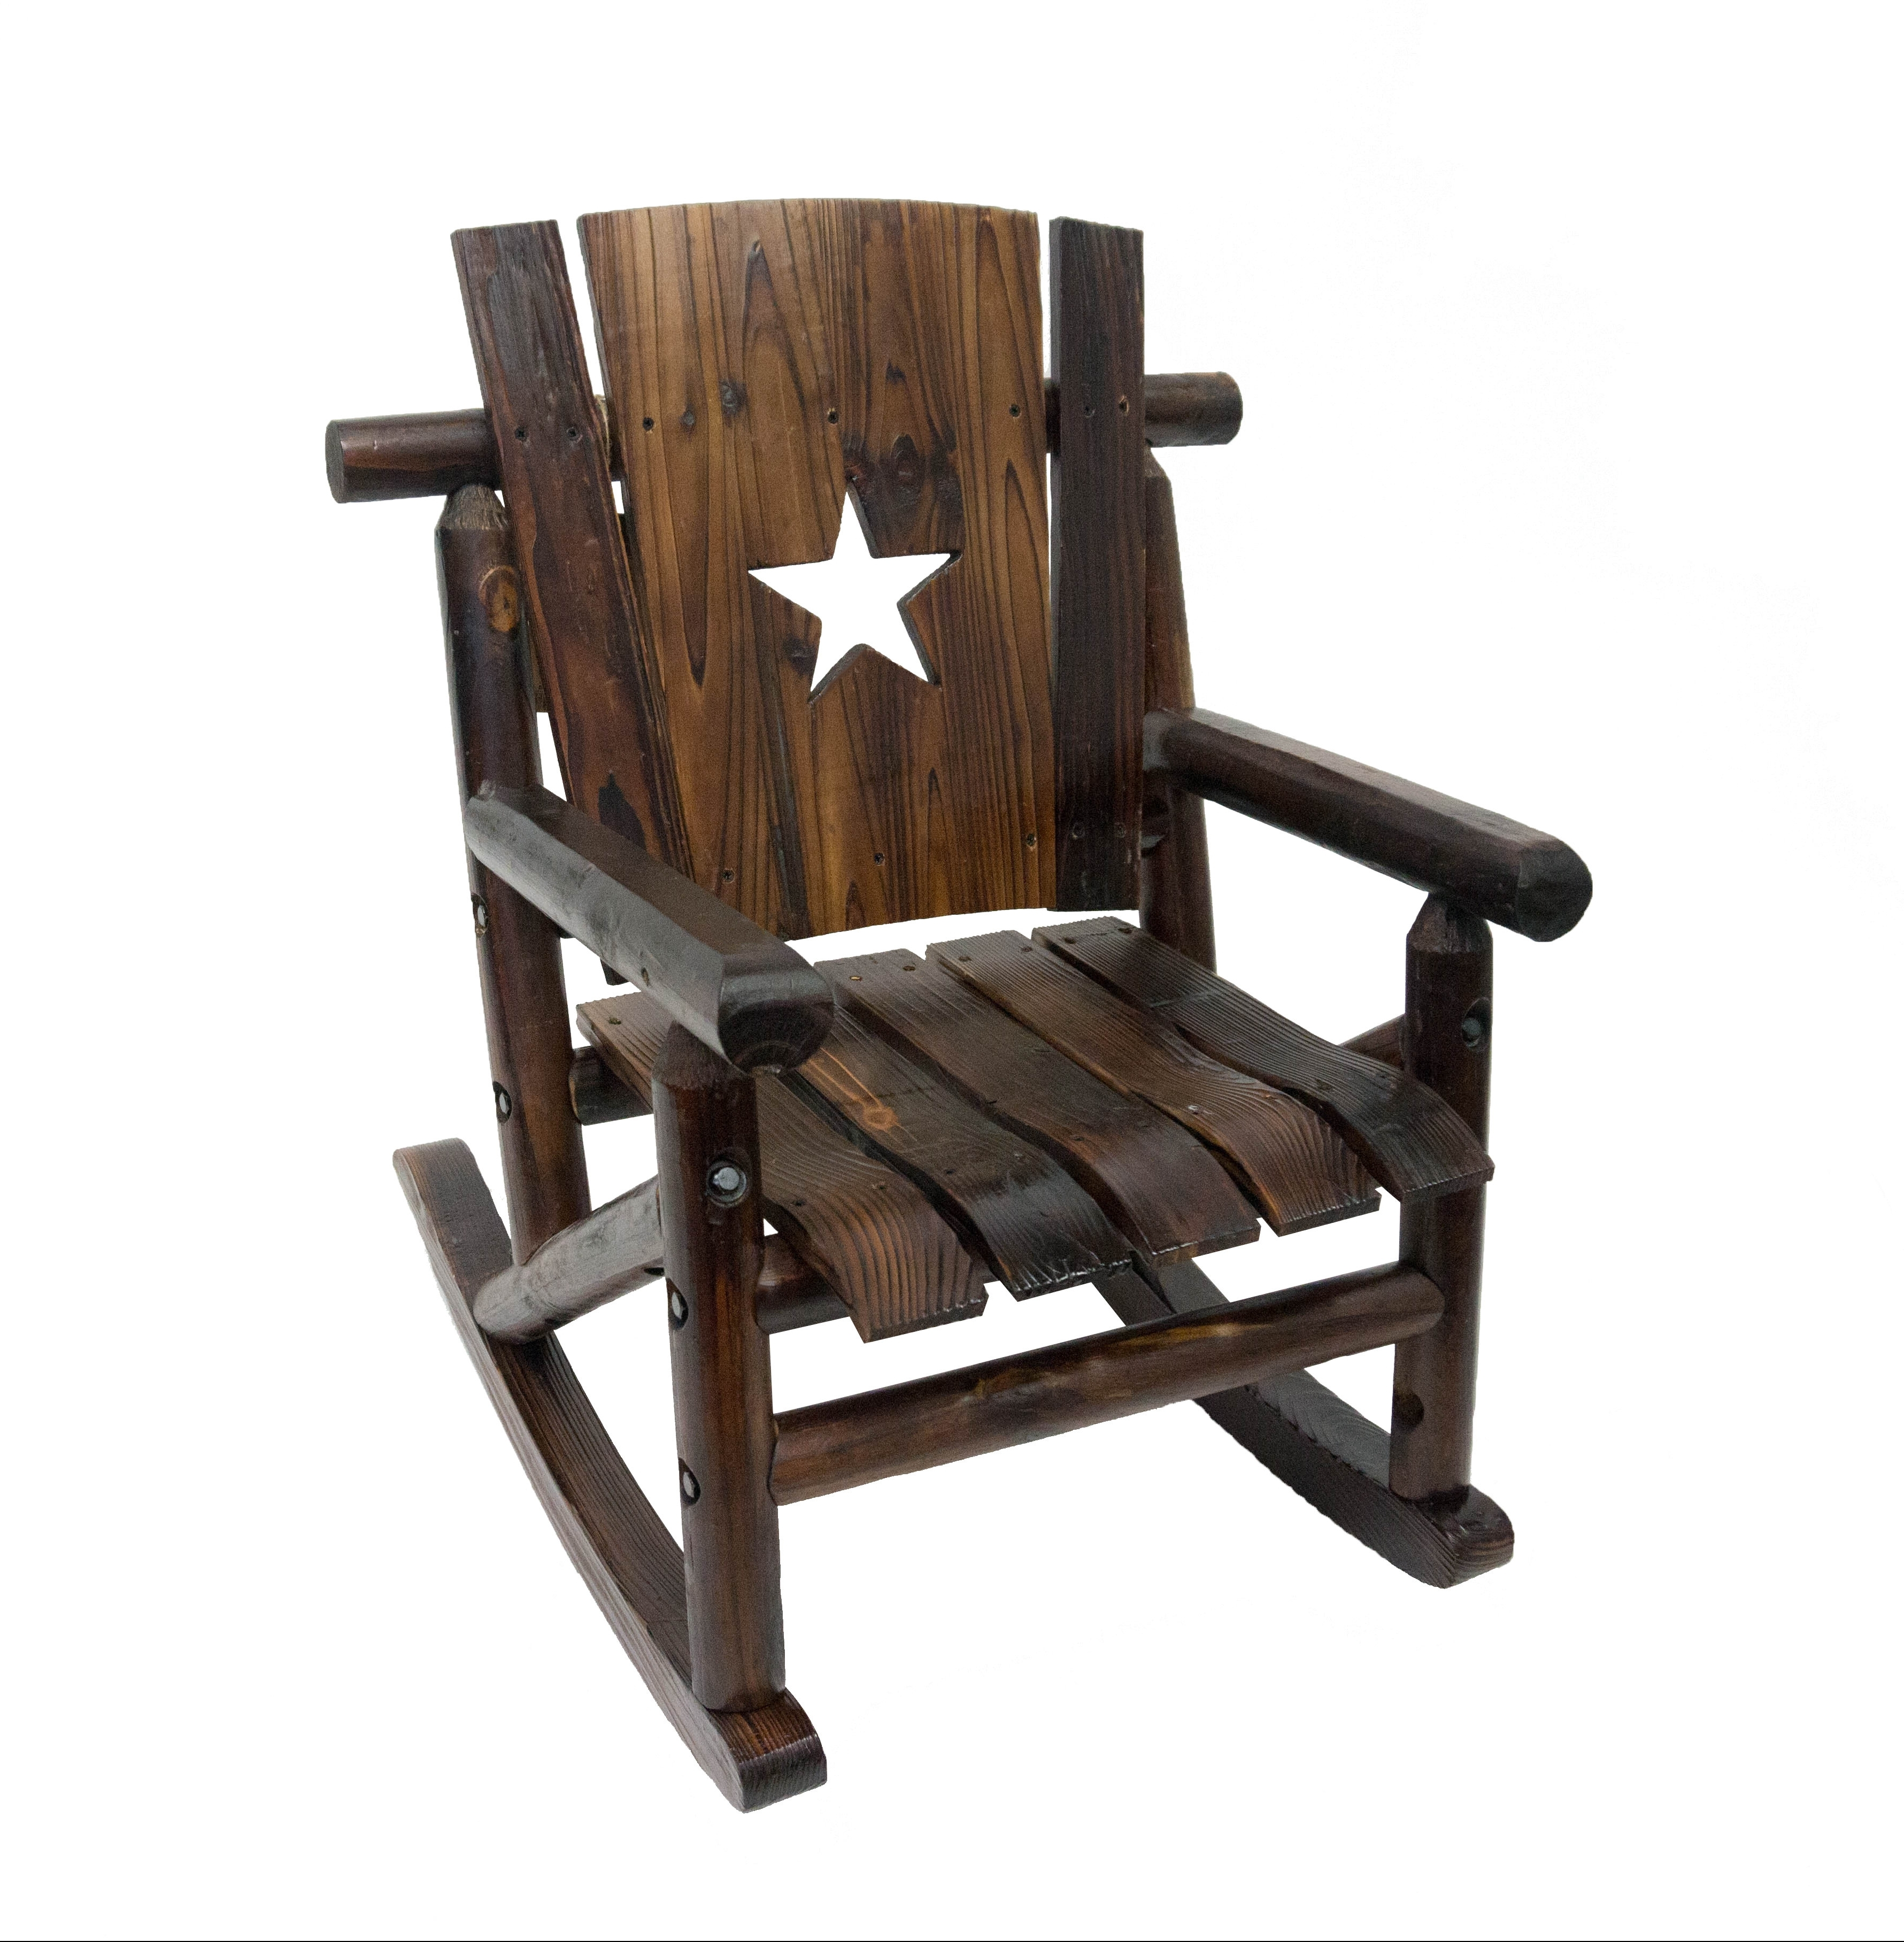 Leighcountry Char Log Junior Lil' Cut Out Star Single Rocking Chair Regarding Most Up To Date Char Log Patio Rocking Chairs With Star (View 10 of 15)